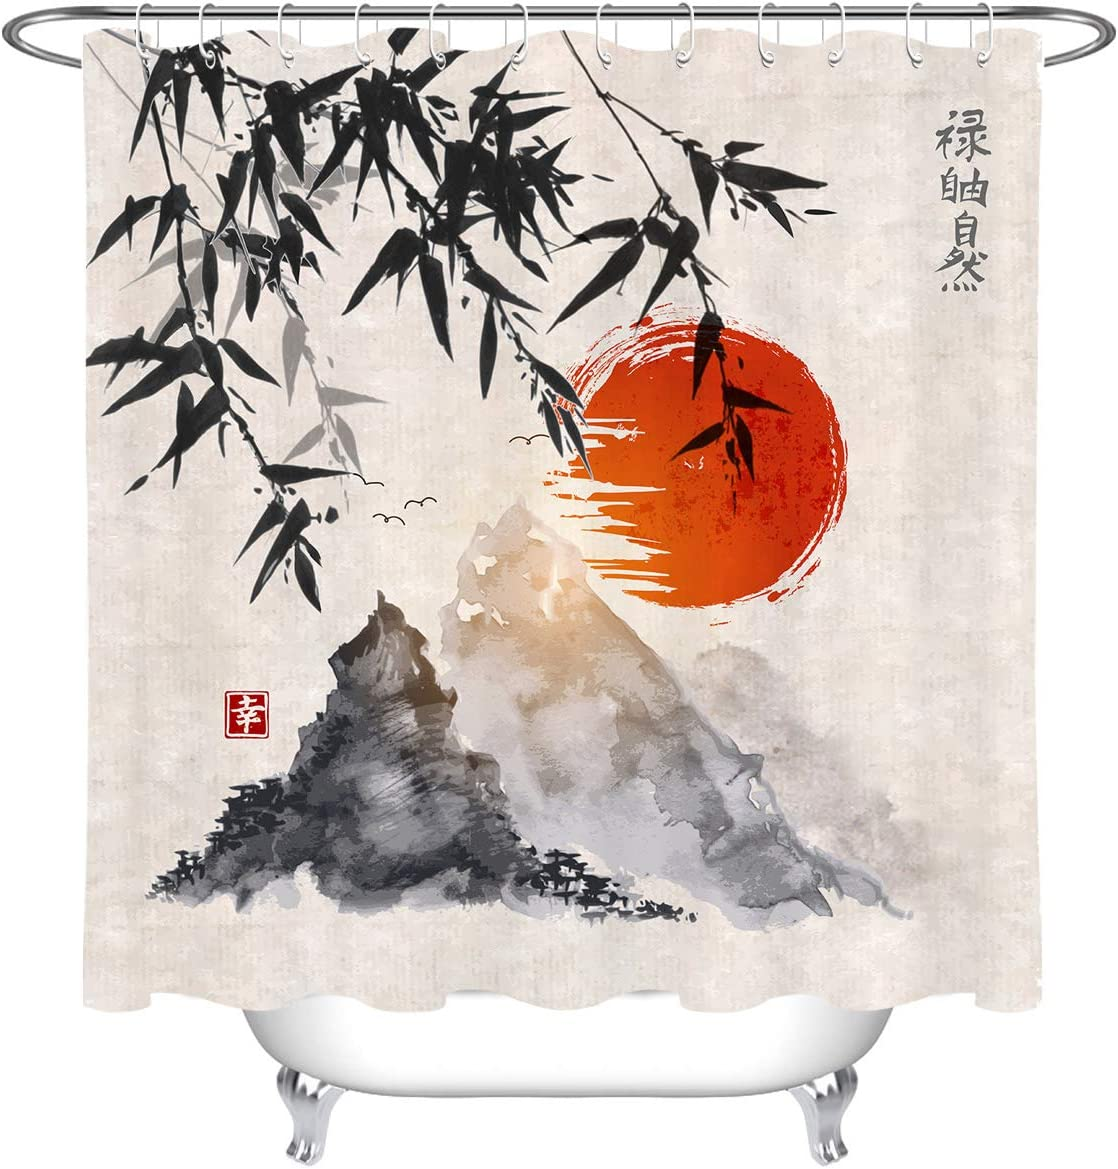 LB Japanese Shower Curtain Black Bamboo Bath Curtain Red Sun and Mountains Asian Ink Painting Anime Bathroom Curtain Set with Hooks,70x70 Inch Waterproof Fabric